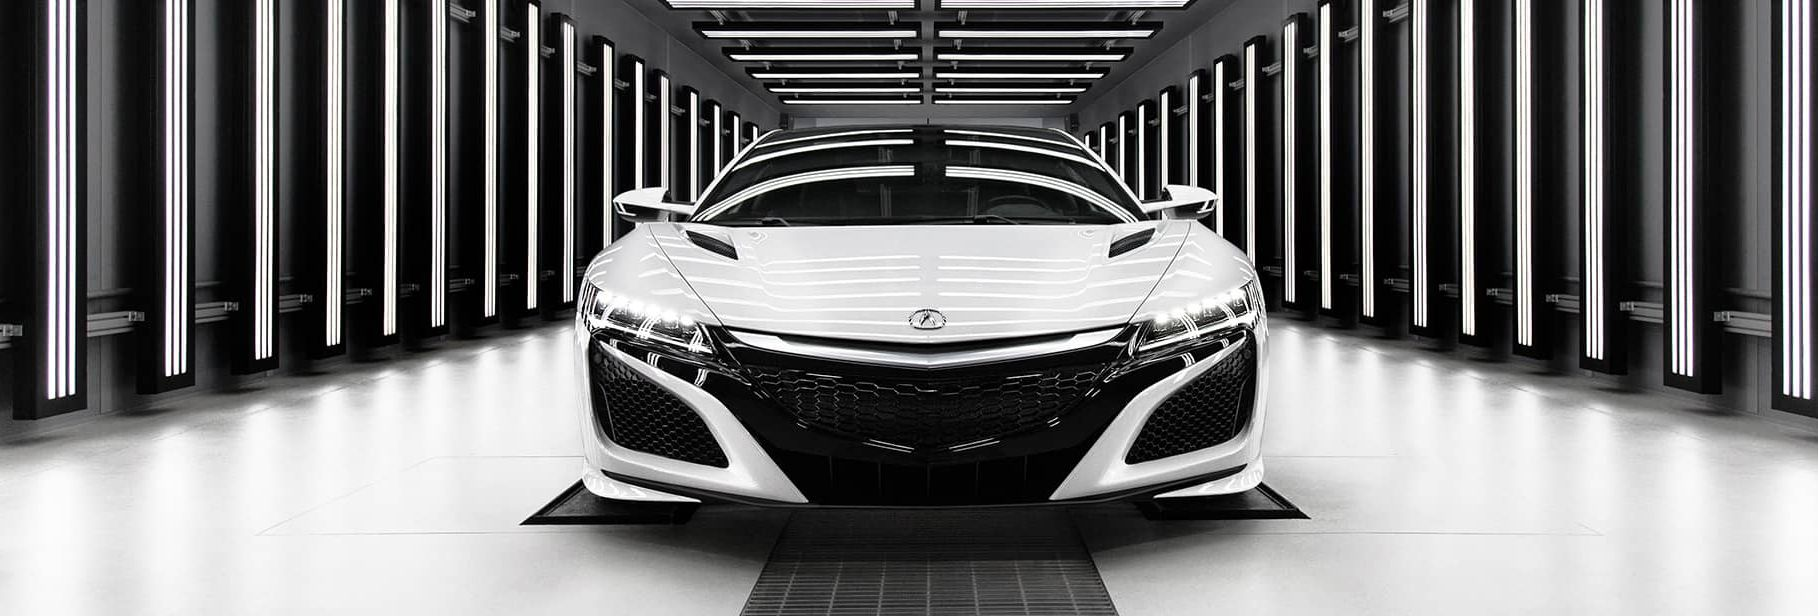 2017 Acura NSX for Sale in Chantilly, VA